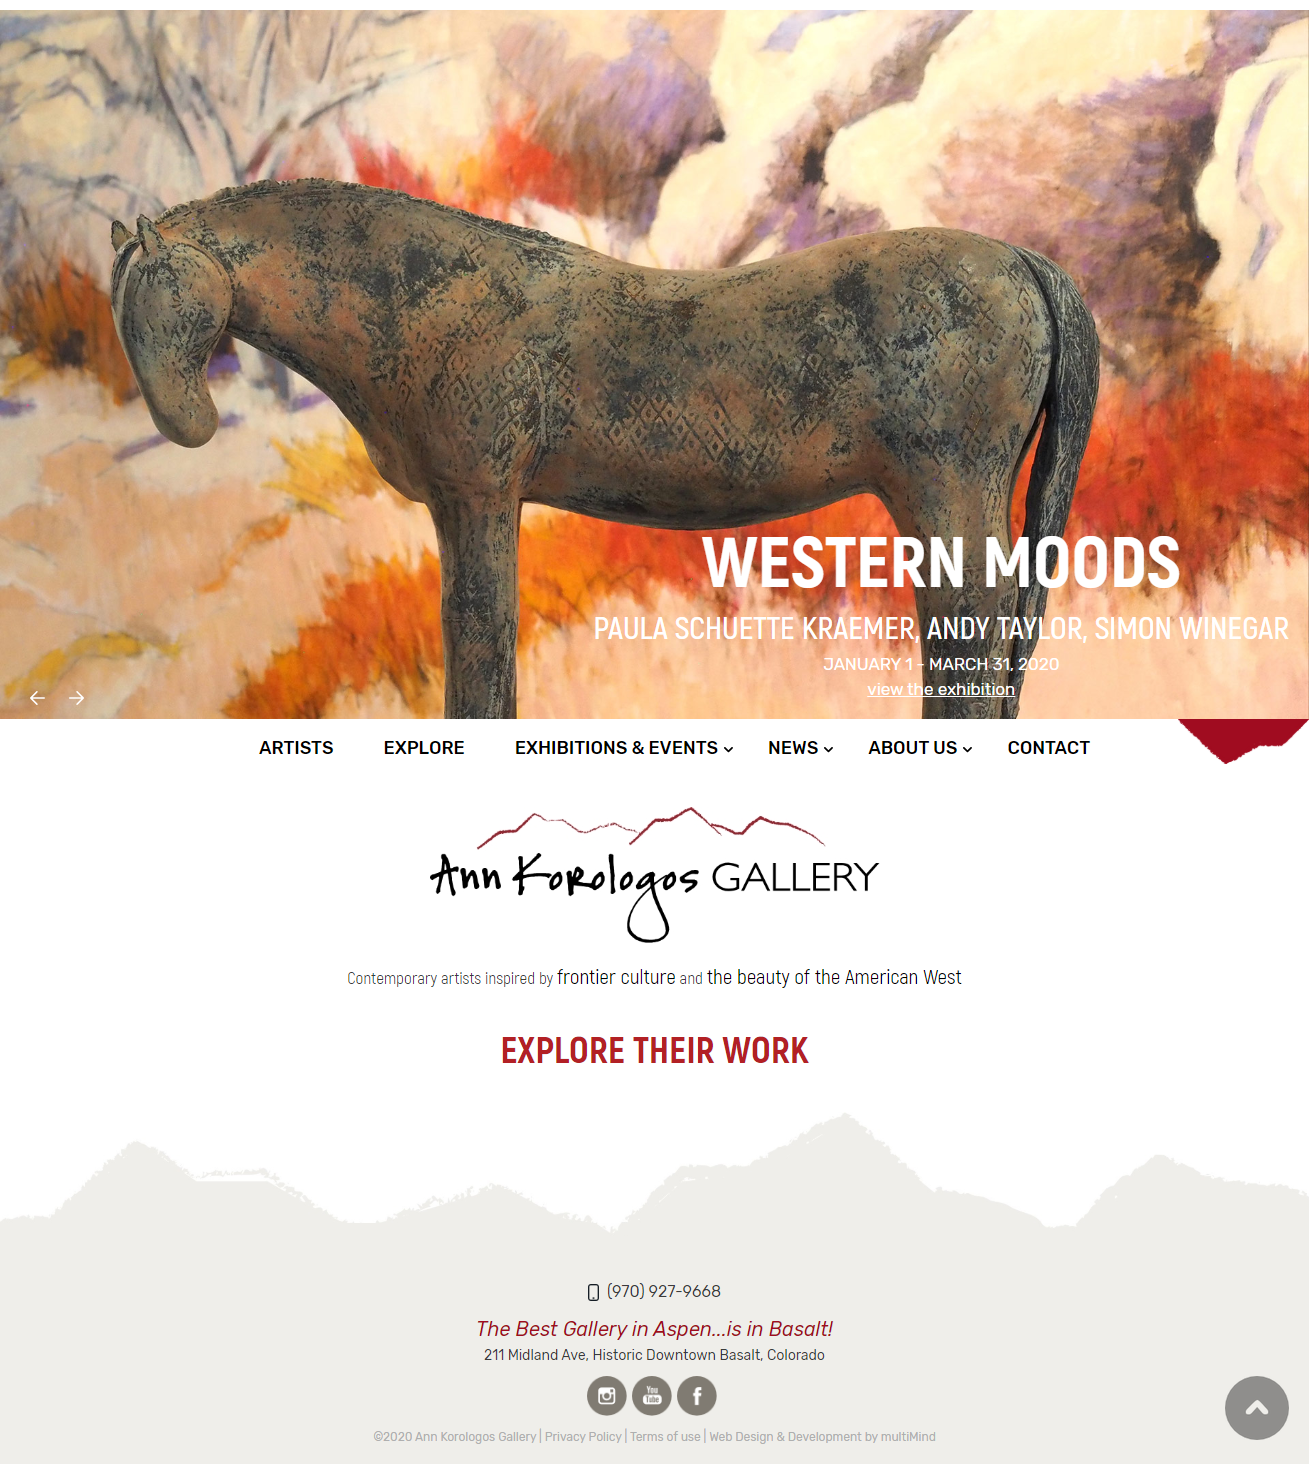 Ann Korologos Gallery website homepage about the art